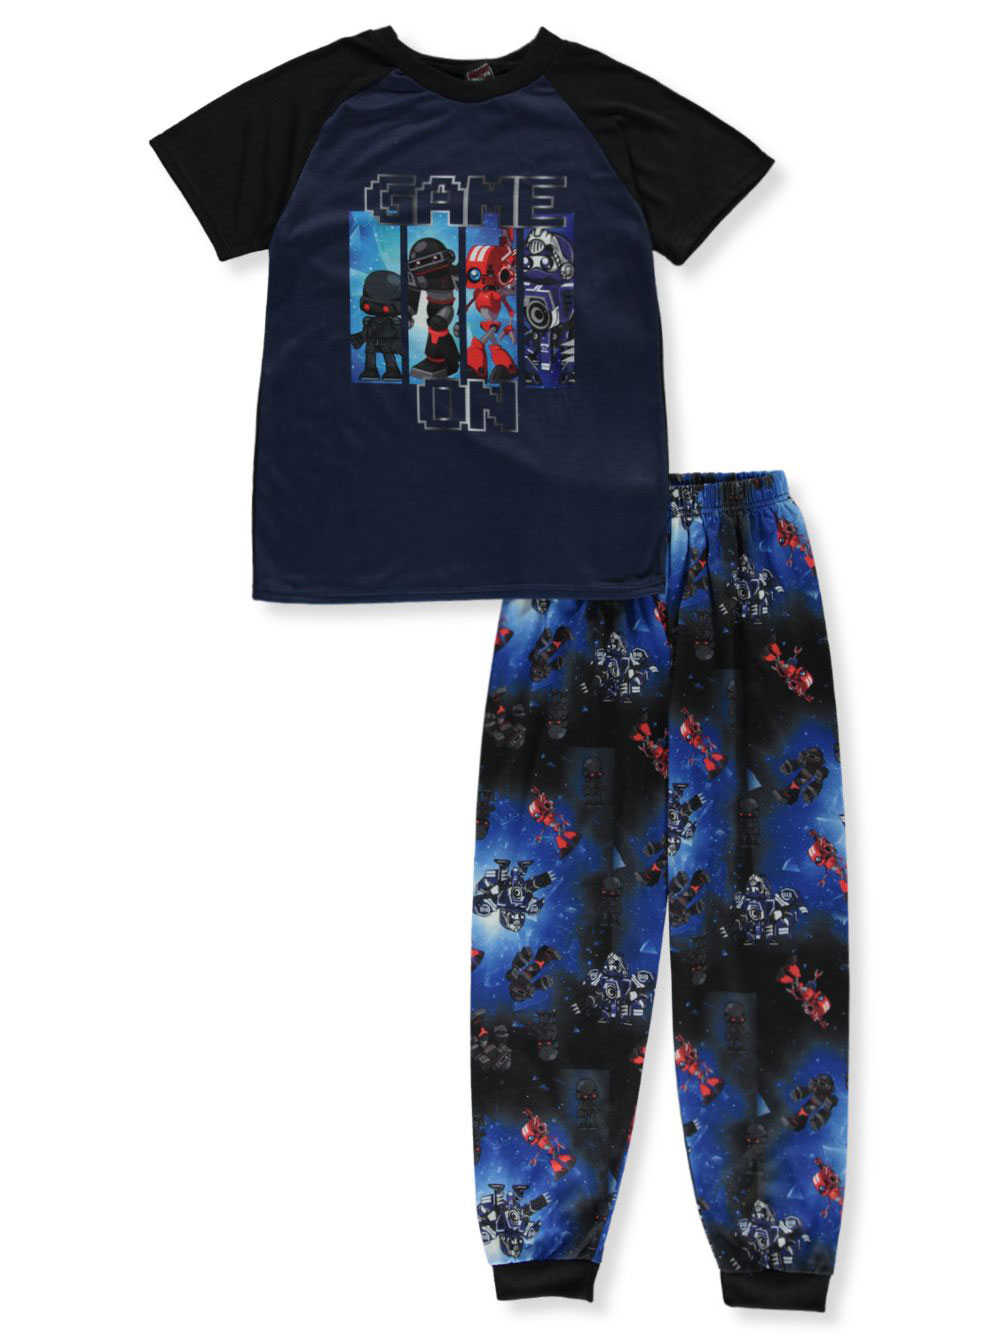 Black/Navy Sleepwear